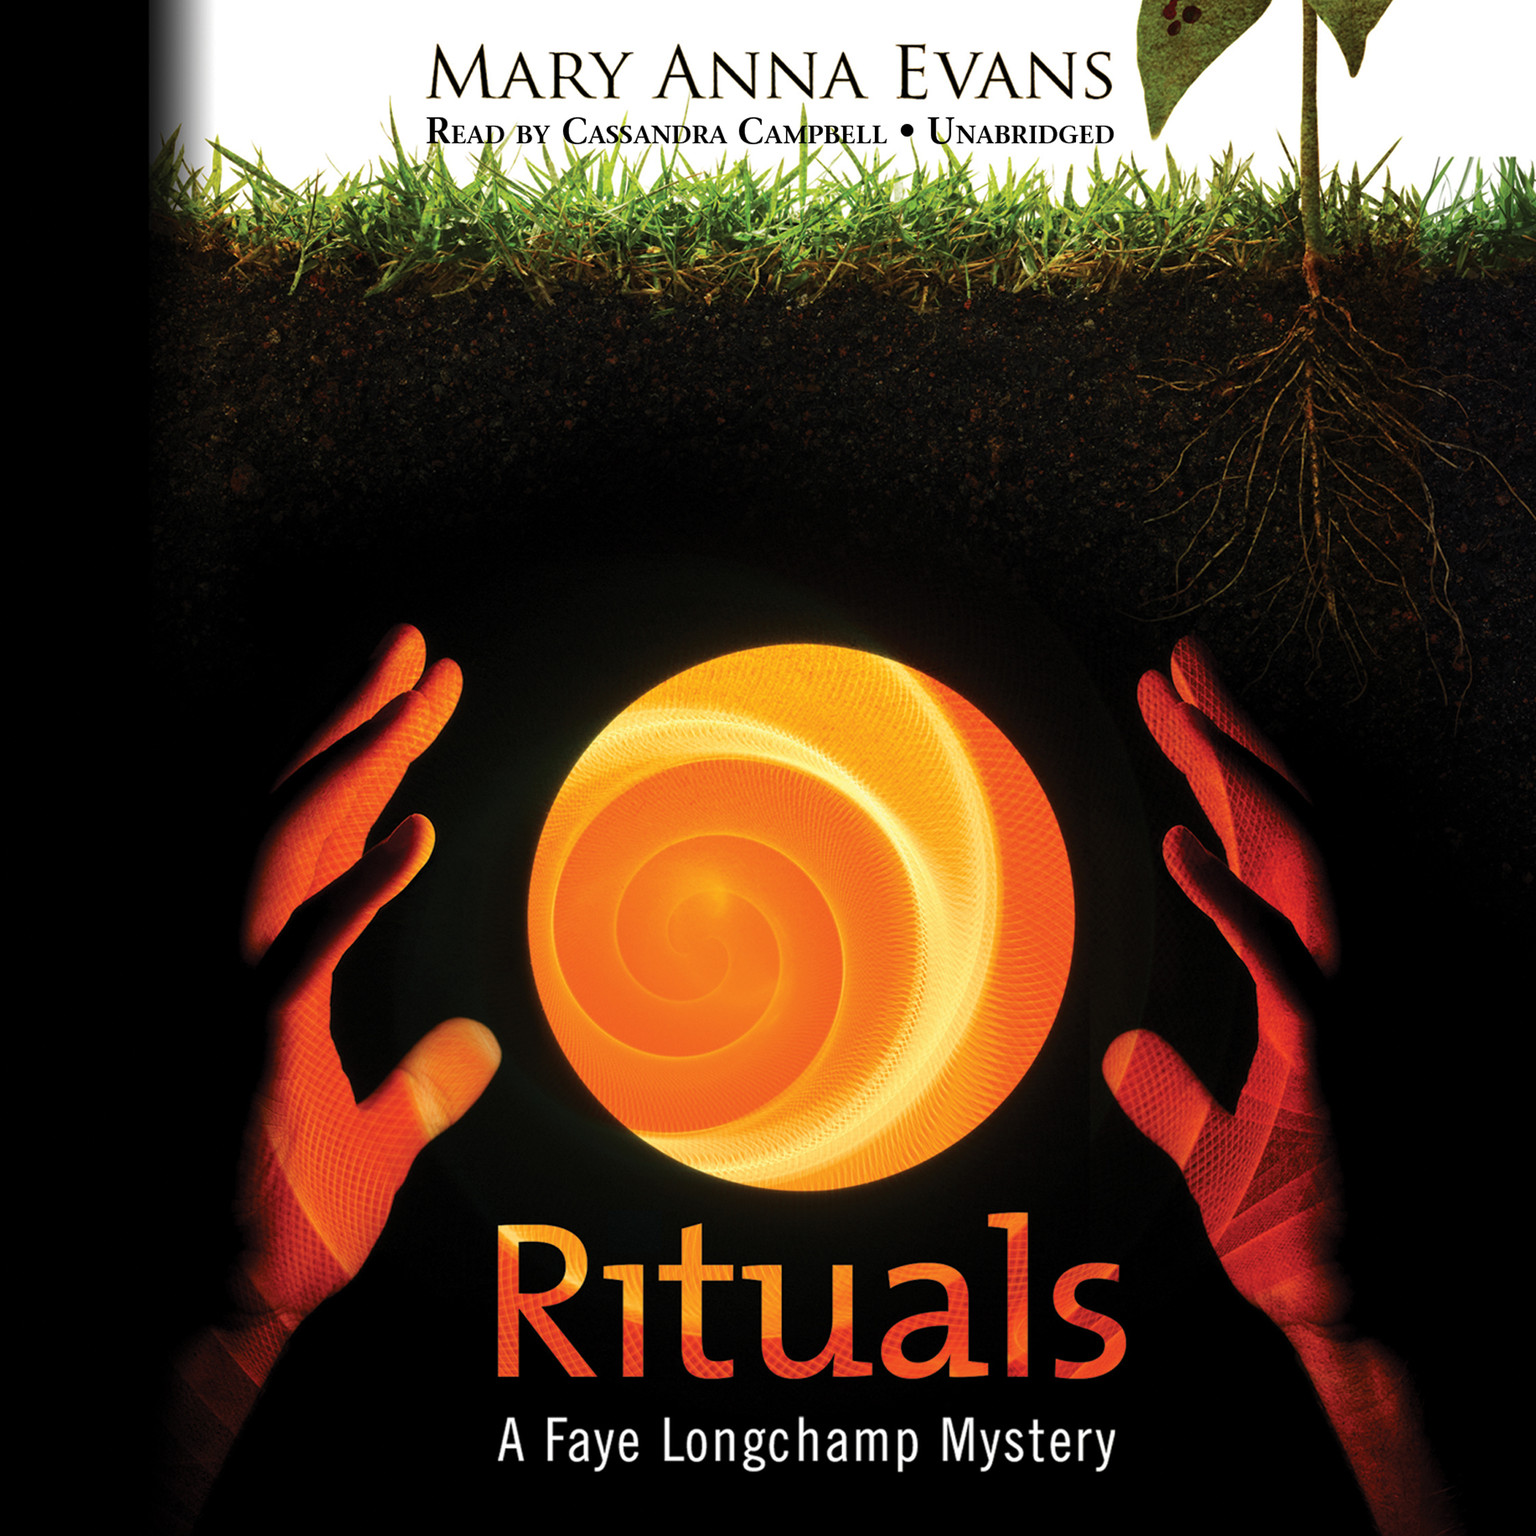 Printable Rituals: A Faye Longchamp Mystery Audiobook Cover Art